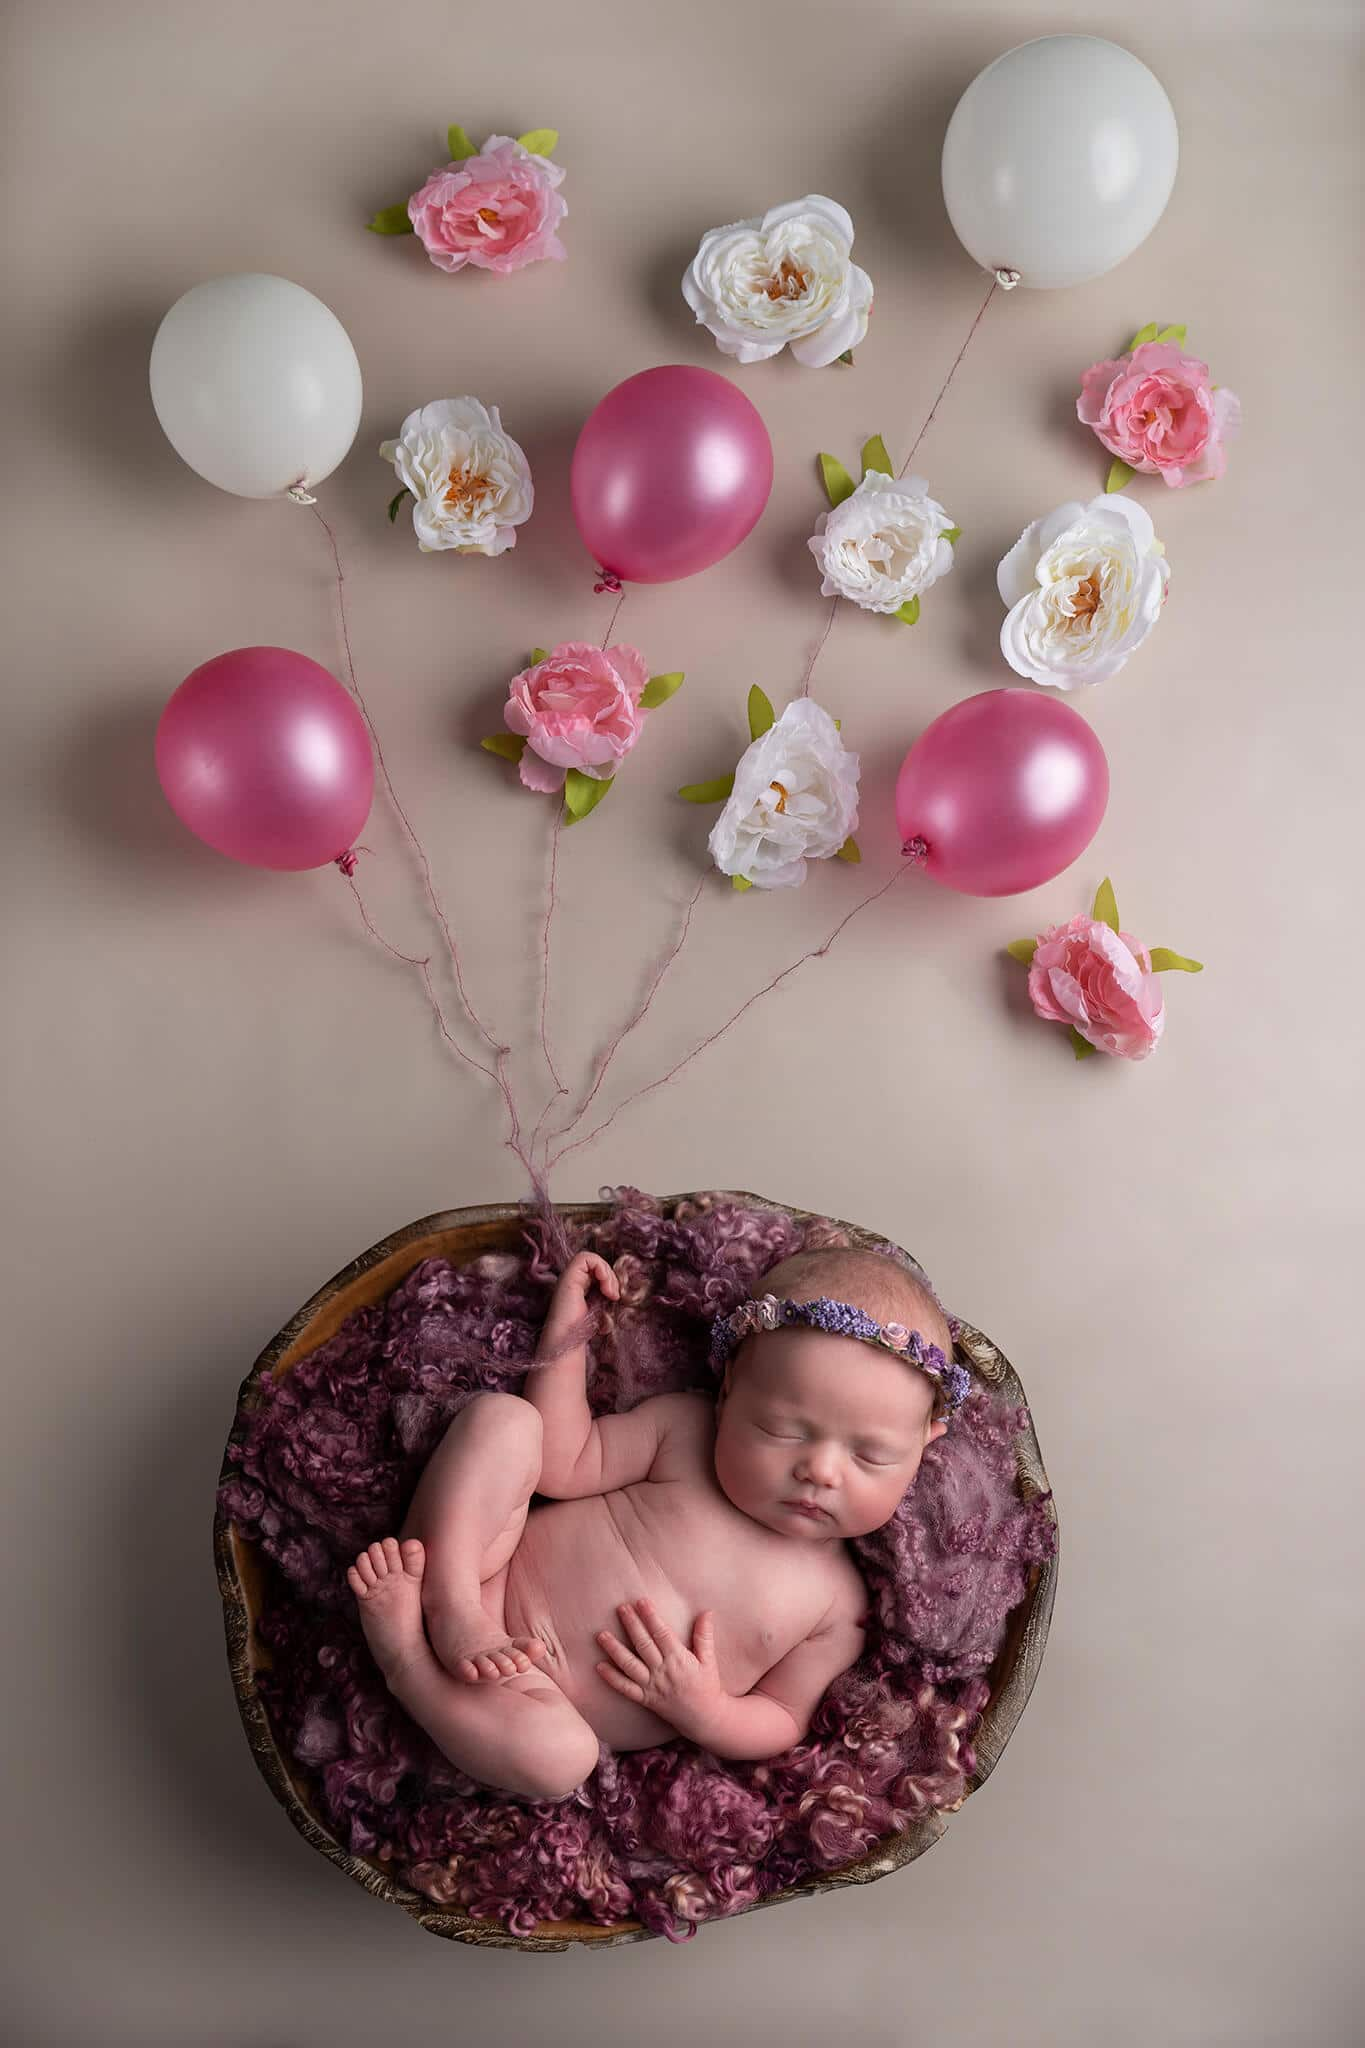 Newborn baby girl in bowl with balloons photographed by Newborn Photographer Cheshire